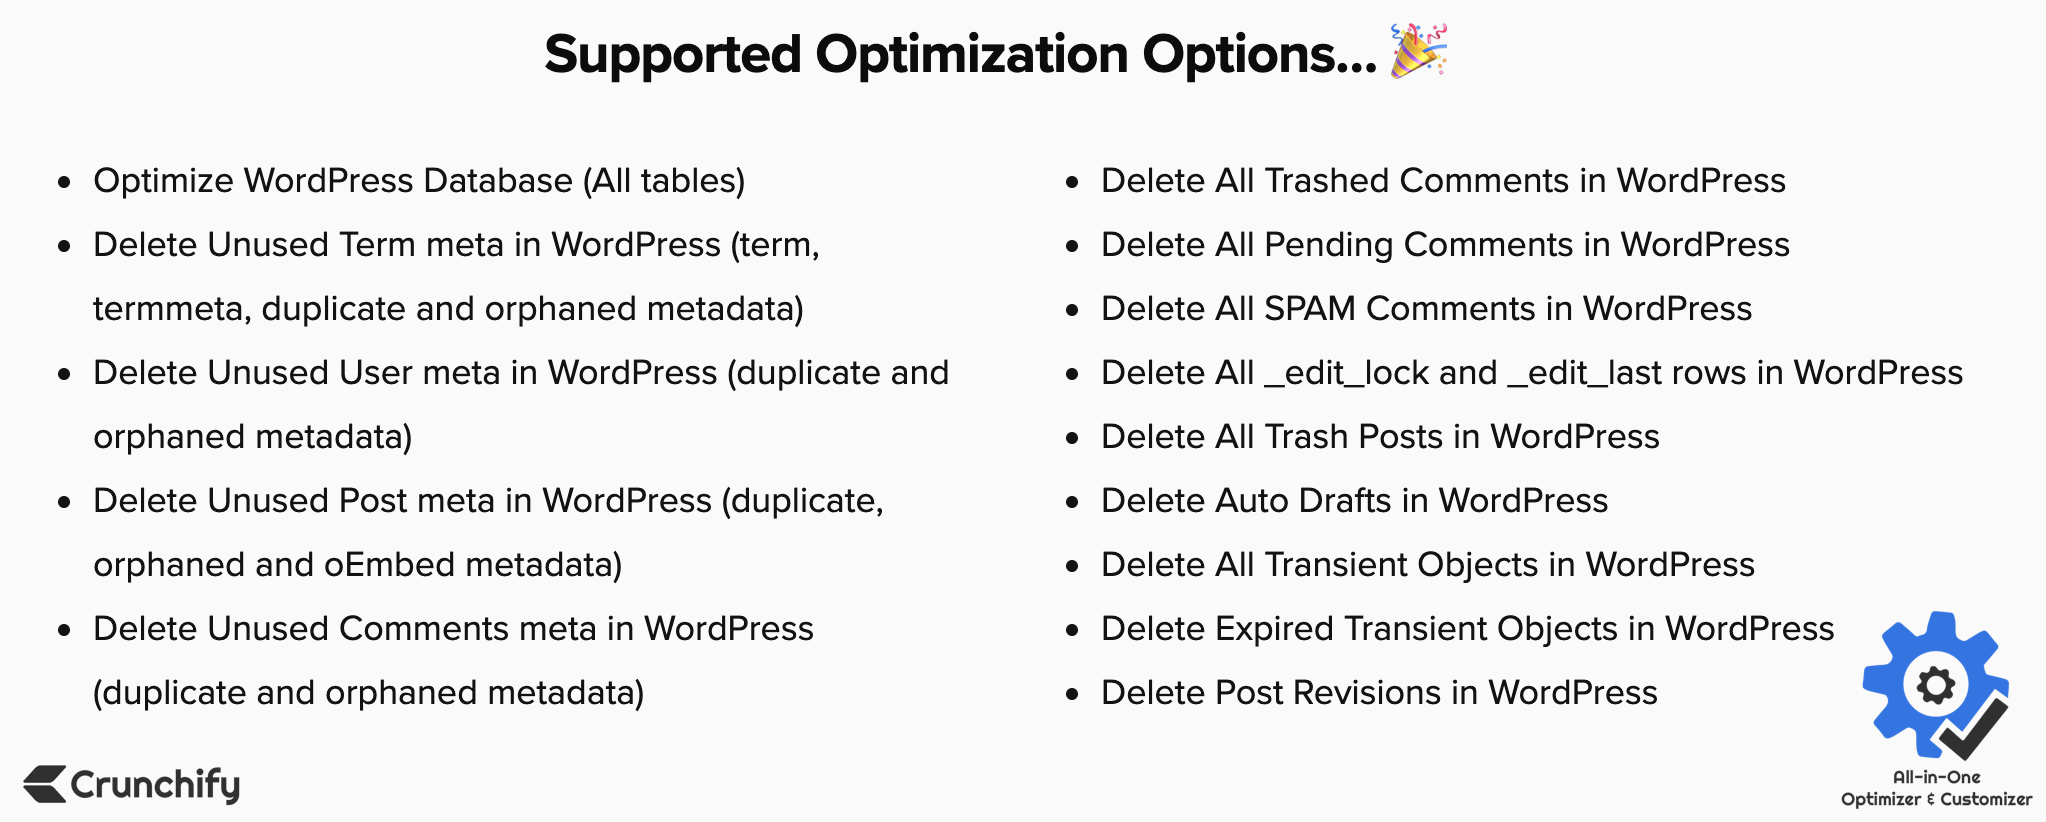 All-in-One Optimizer & Customizer - Supported Optimization Options